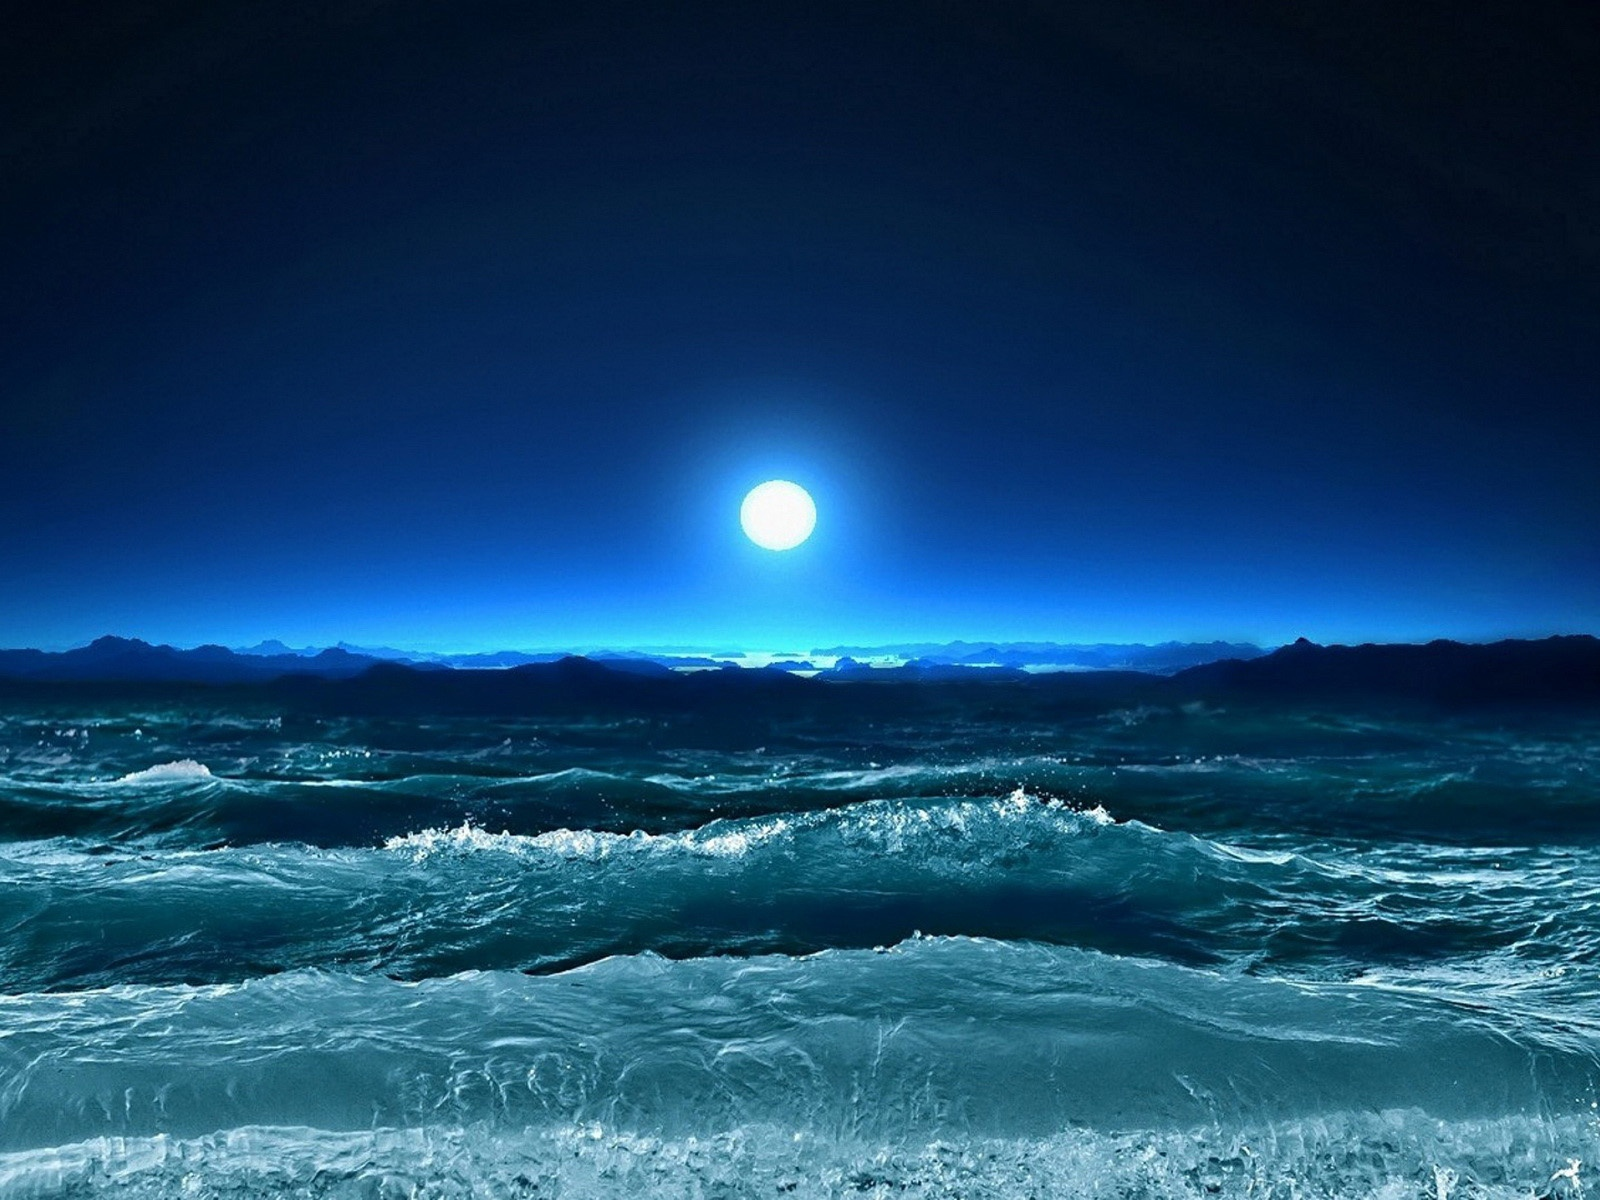 storm_waves_sea_moon_night_art_45814_1600x1200